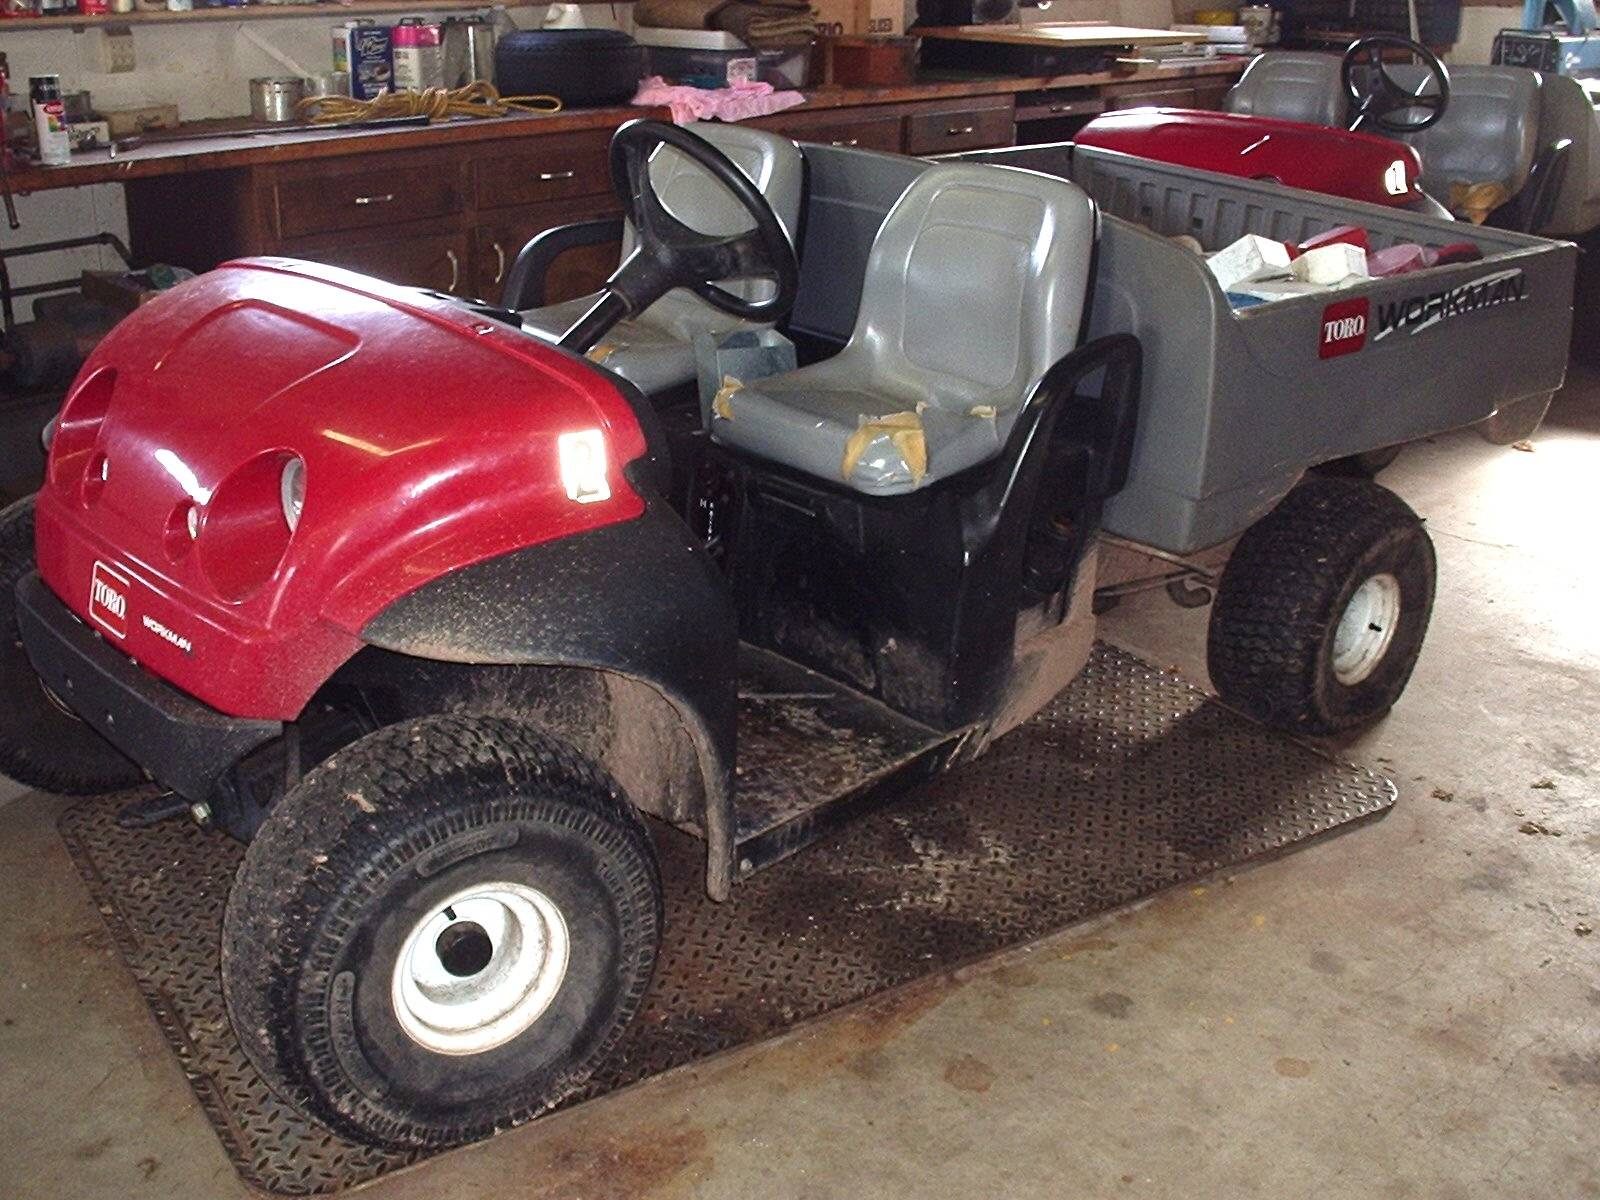 00002 Used Toro Hydraulic Wheel Motor 95 8694 additionally Index besides 400508768290 furthermore pact Utility Loaders furthermore Toro GrandStand Mower With 52 22 Turbo Force Deck 74549. on toro rotary mowers